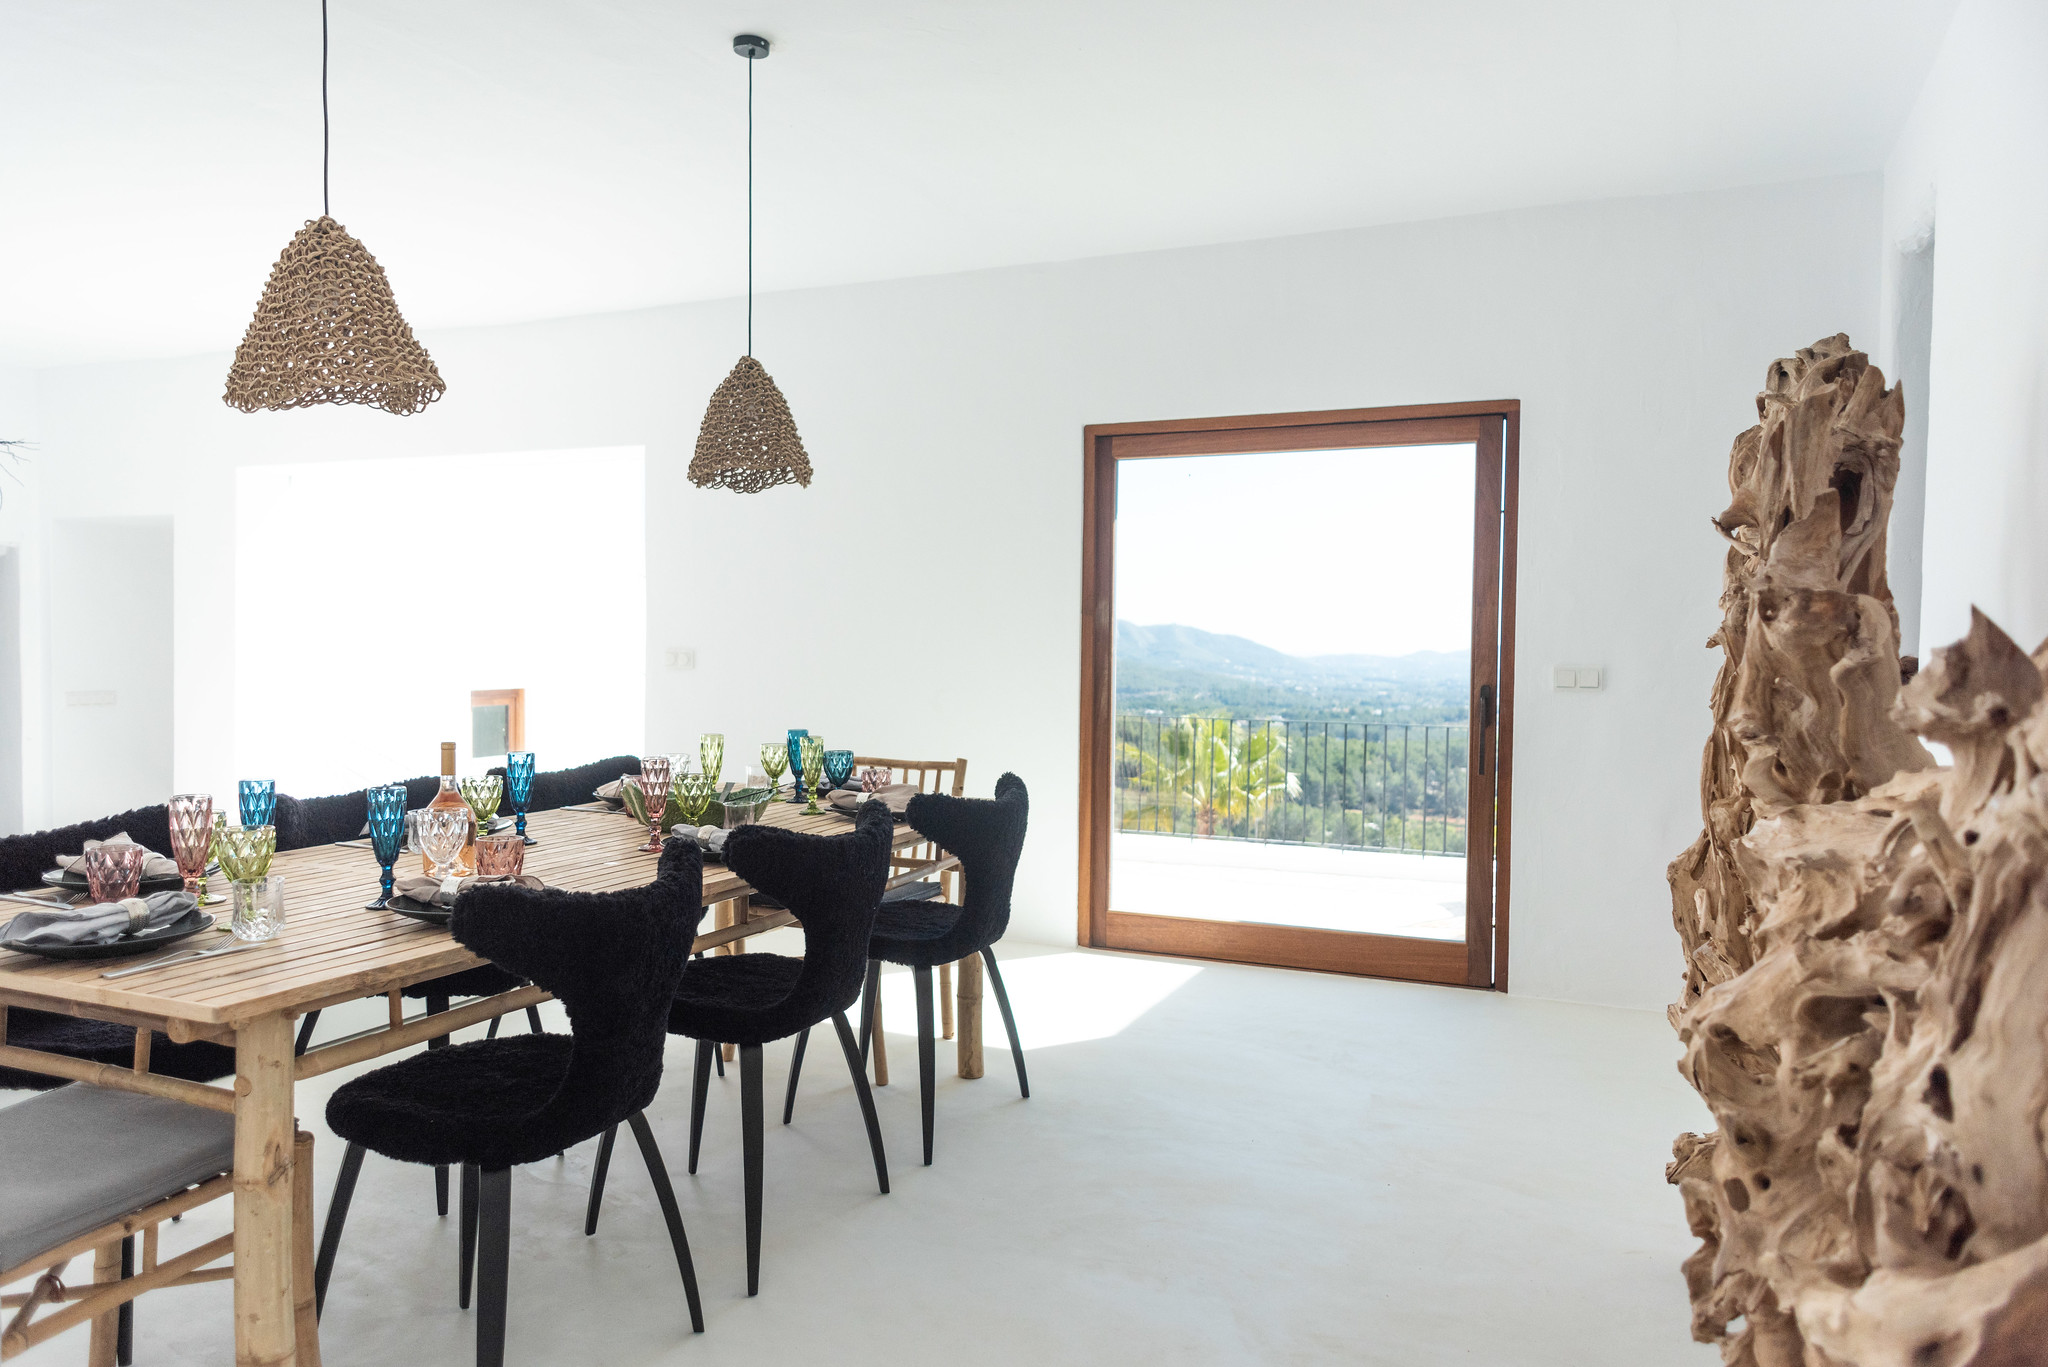 https://www.white-ibiza.com/wp-content/uploads/2020/05/white-ibiza-villas-can-cactus-front-door-view.jpg